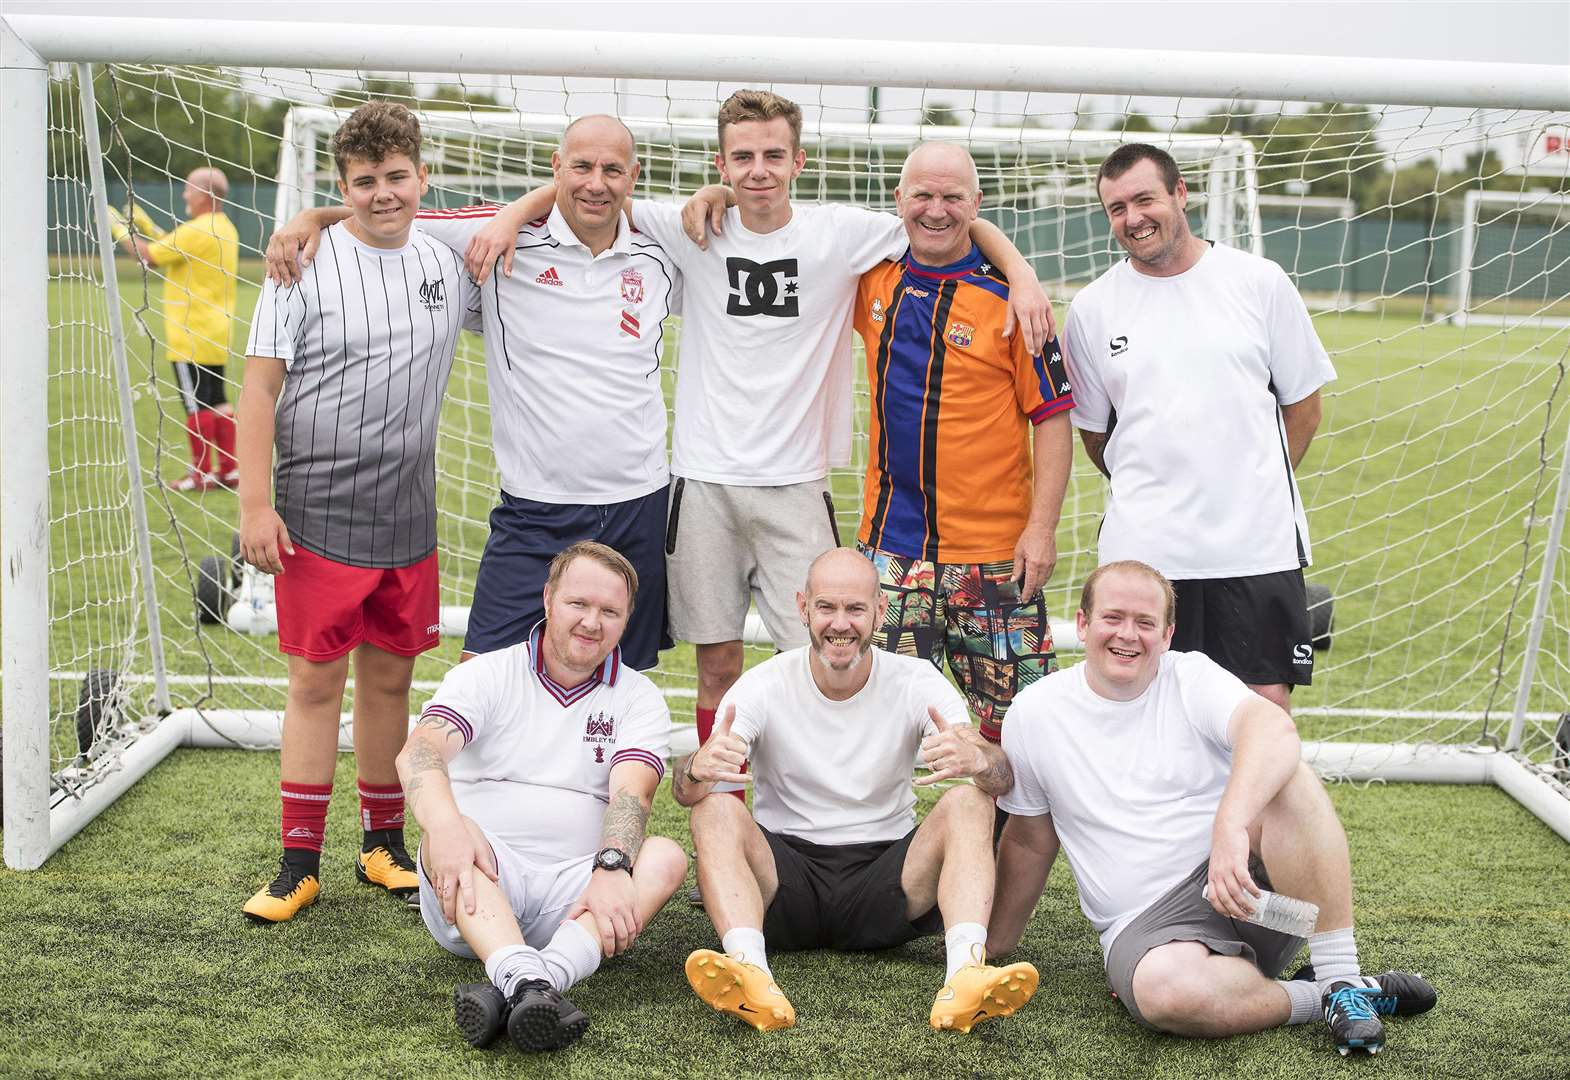 Haverhill charity walking football tournament makes a successful debut